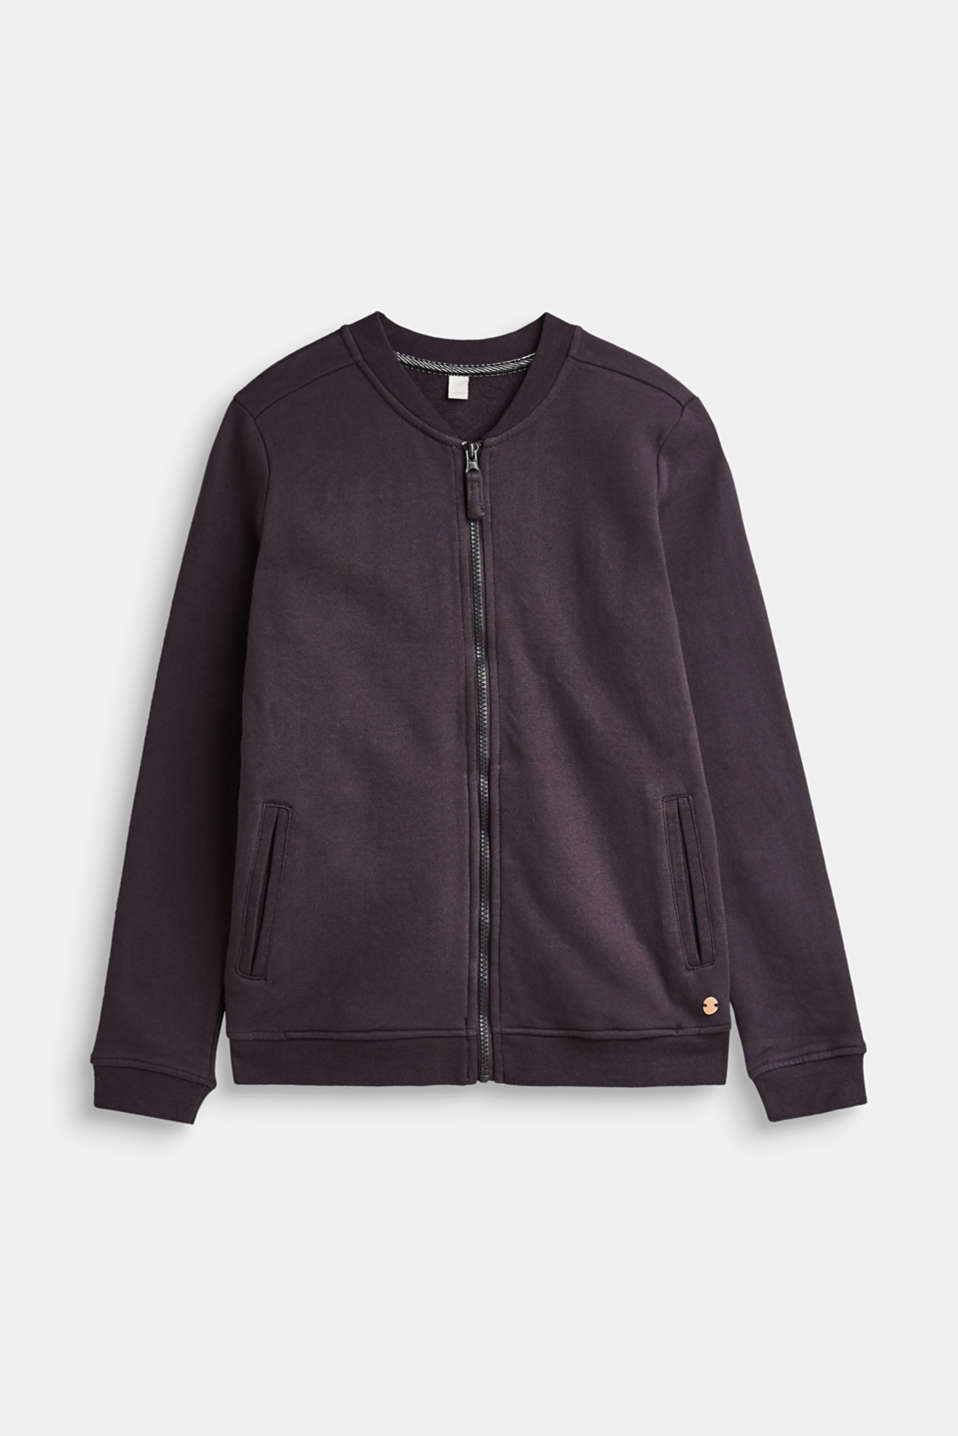 Esprit - Sweatshirt cardigan in a bomber jacket design, 100% cotton